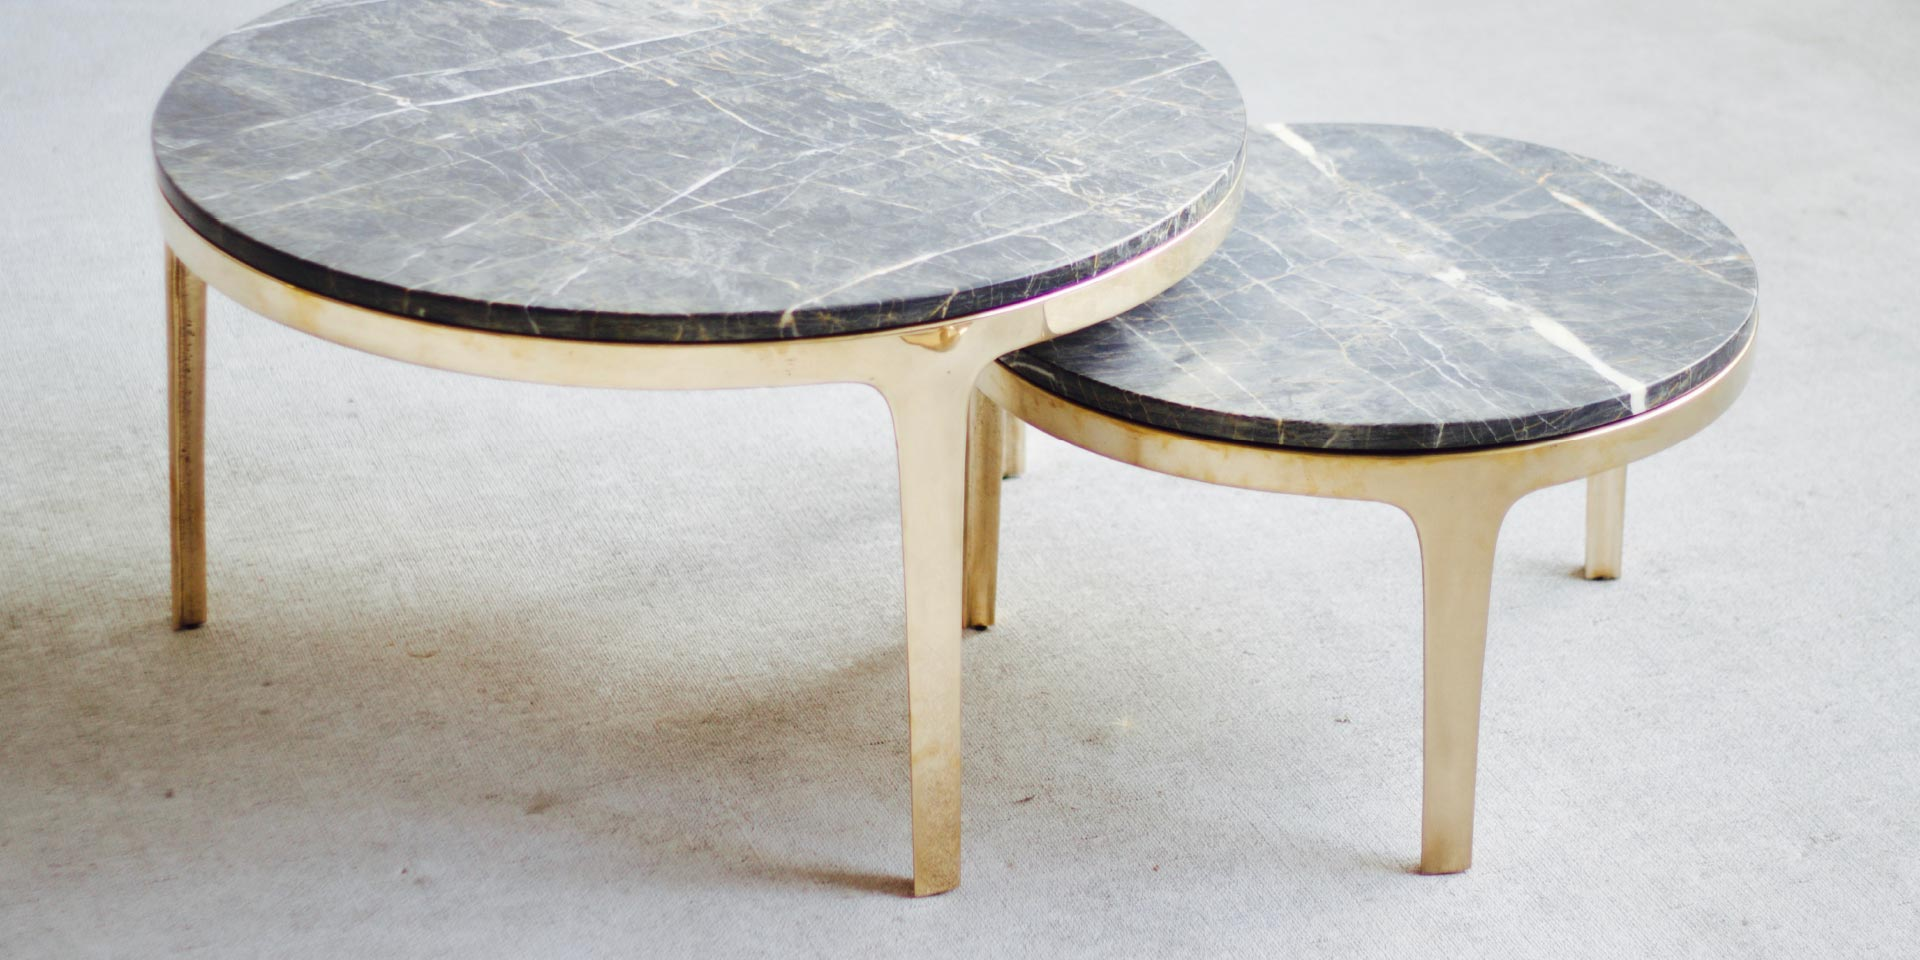 Gallery of bronze round coffee table by barbera local australian furniture lighting object design